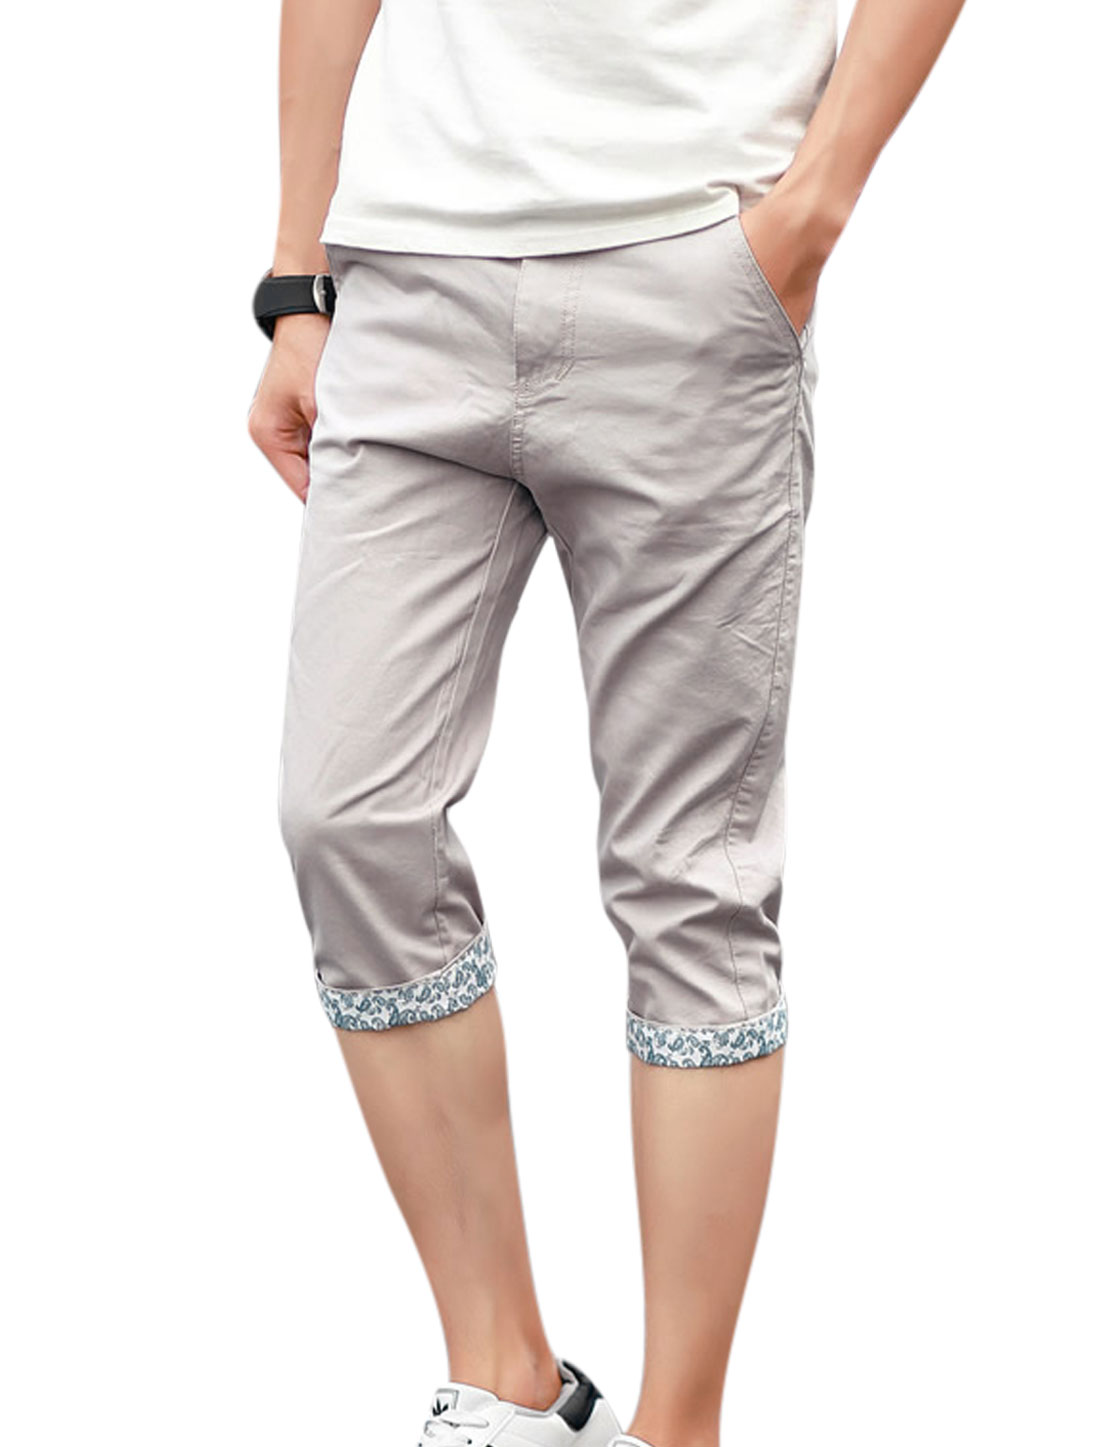 Men Mid Rise Zip Fly Pockets Slim Fit Capris Pants Light Gray W32